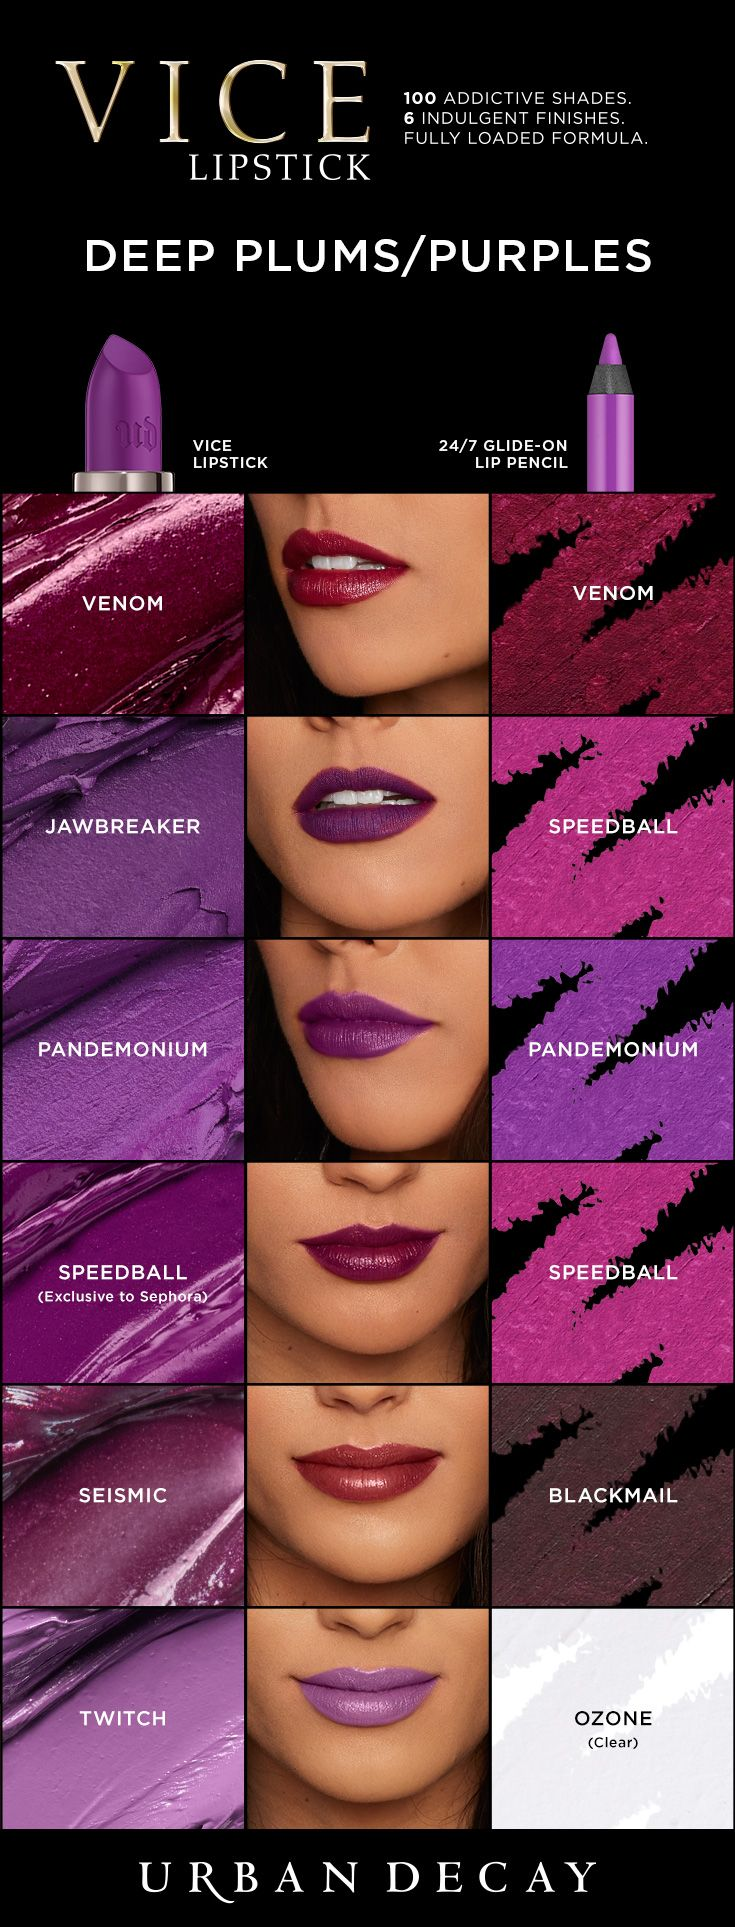 Are you all about purple? Then you'll be hooked on these must-have shades of Vice Lipstick. From cream to mega matte, we've got the shade and the finish you've dying to get your hands on. Pick 'em up now at urbandecay.com. #LipstickIsMyVice